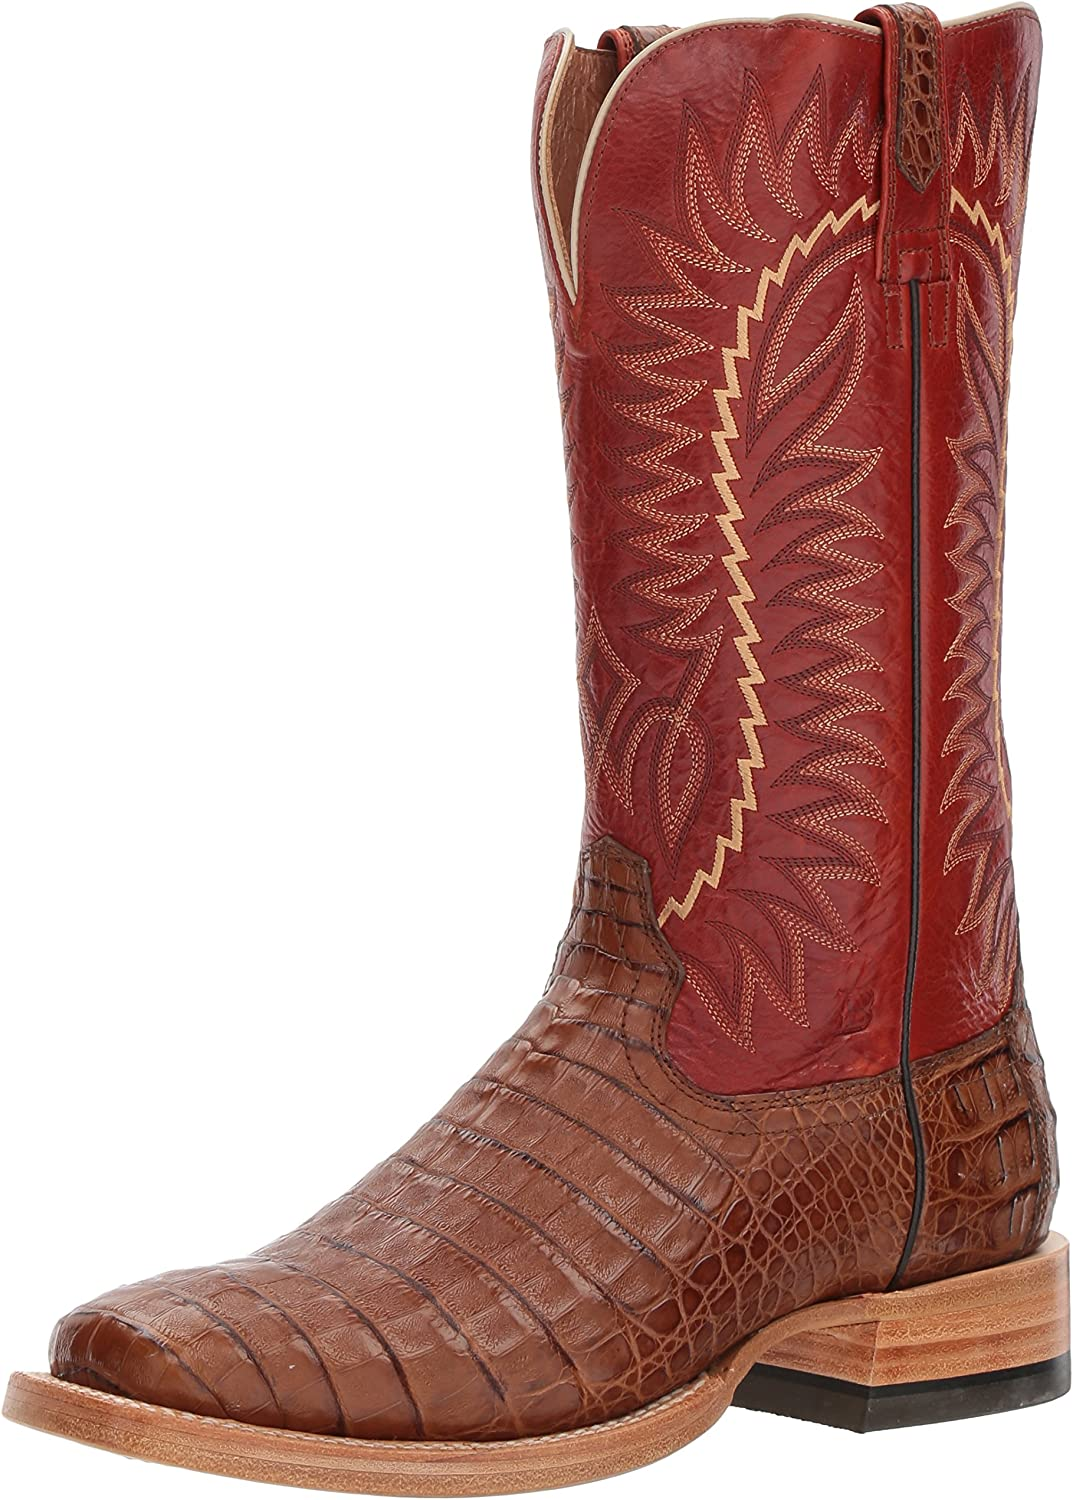 ARIAT Men's Relentless Gold Buckle Western Boot